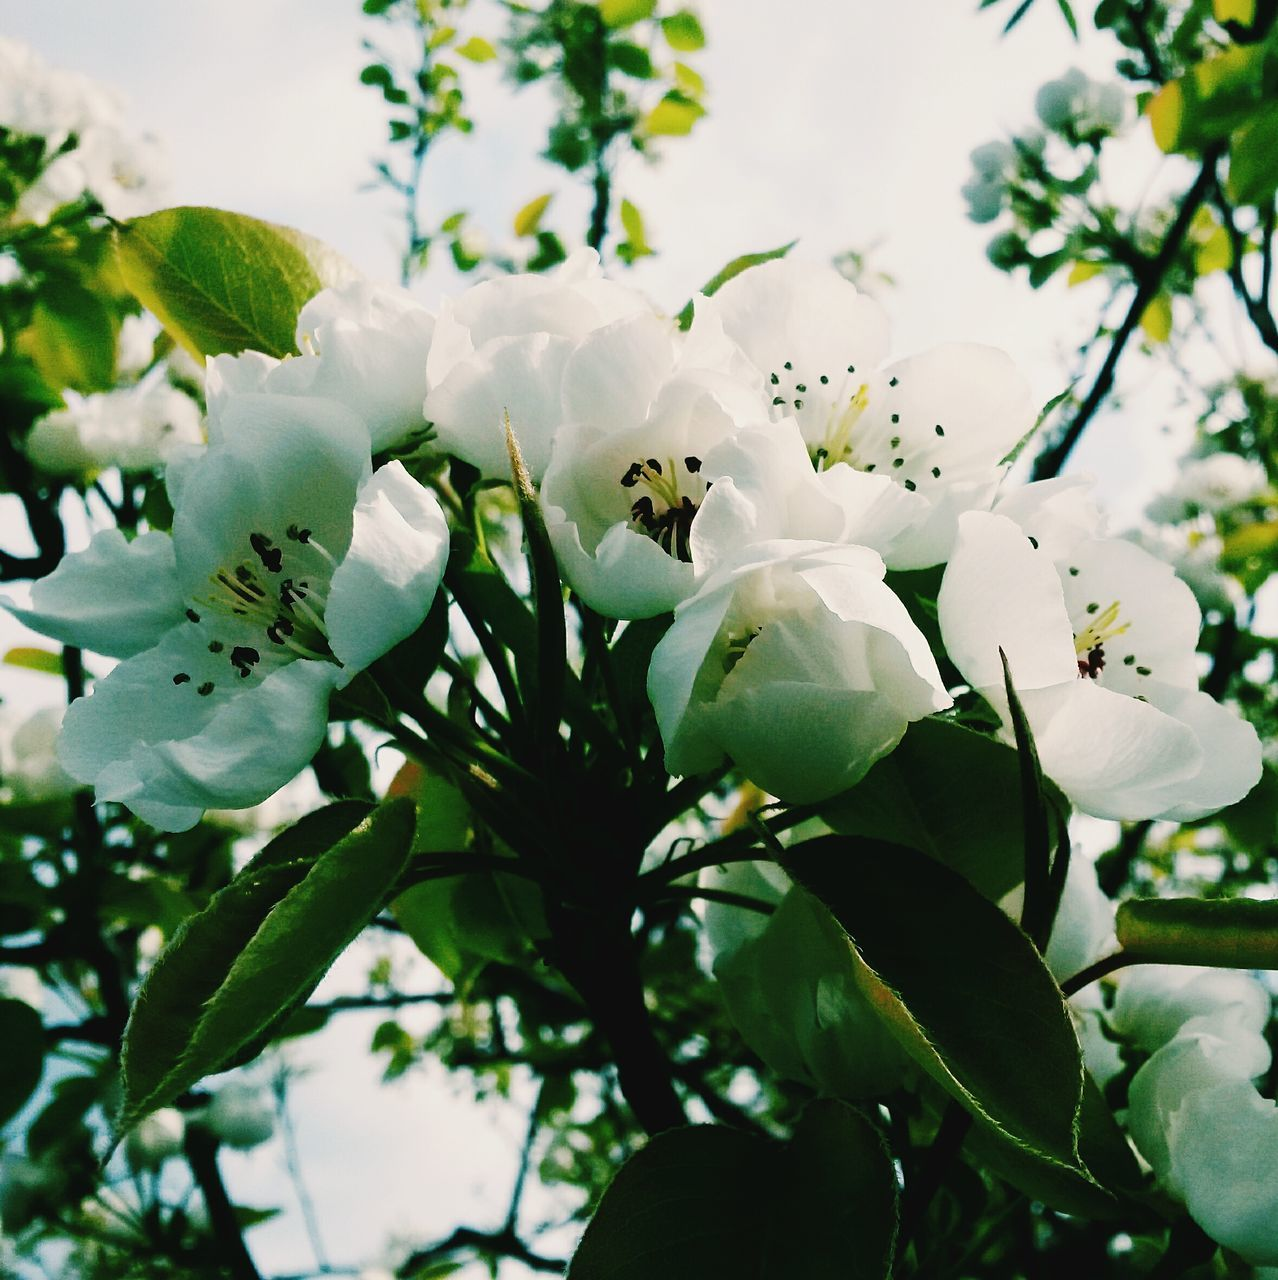 Close-Up Of White Cherry Blossoms Blooming Outdoors